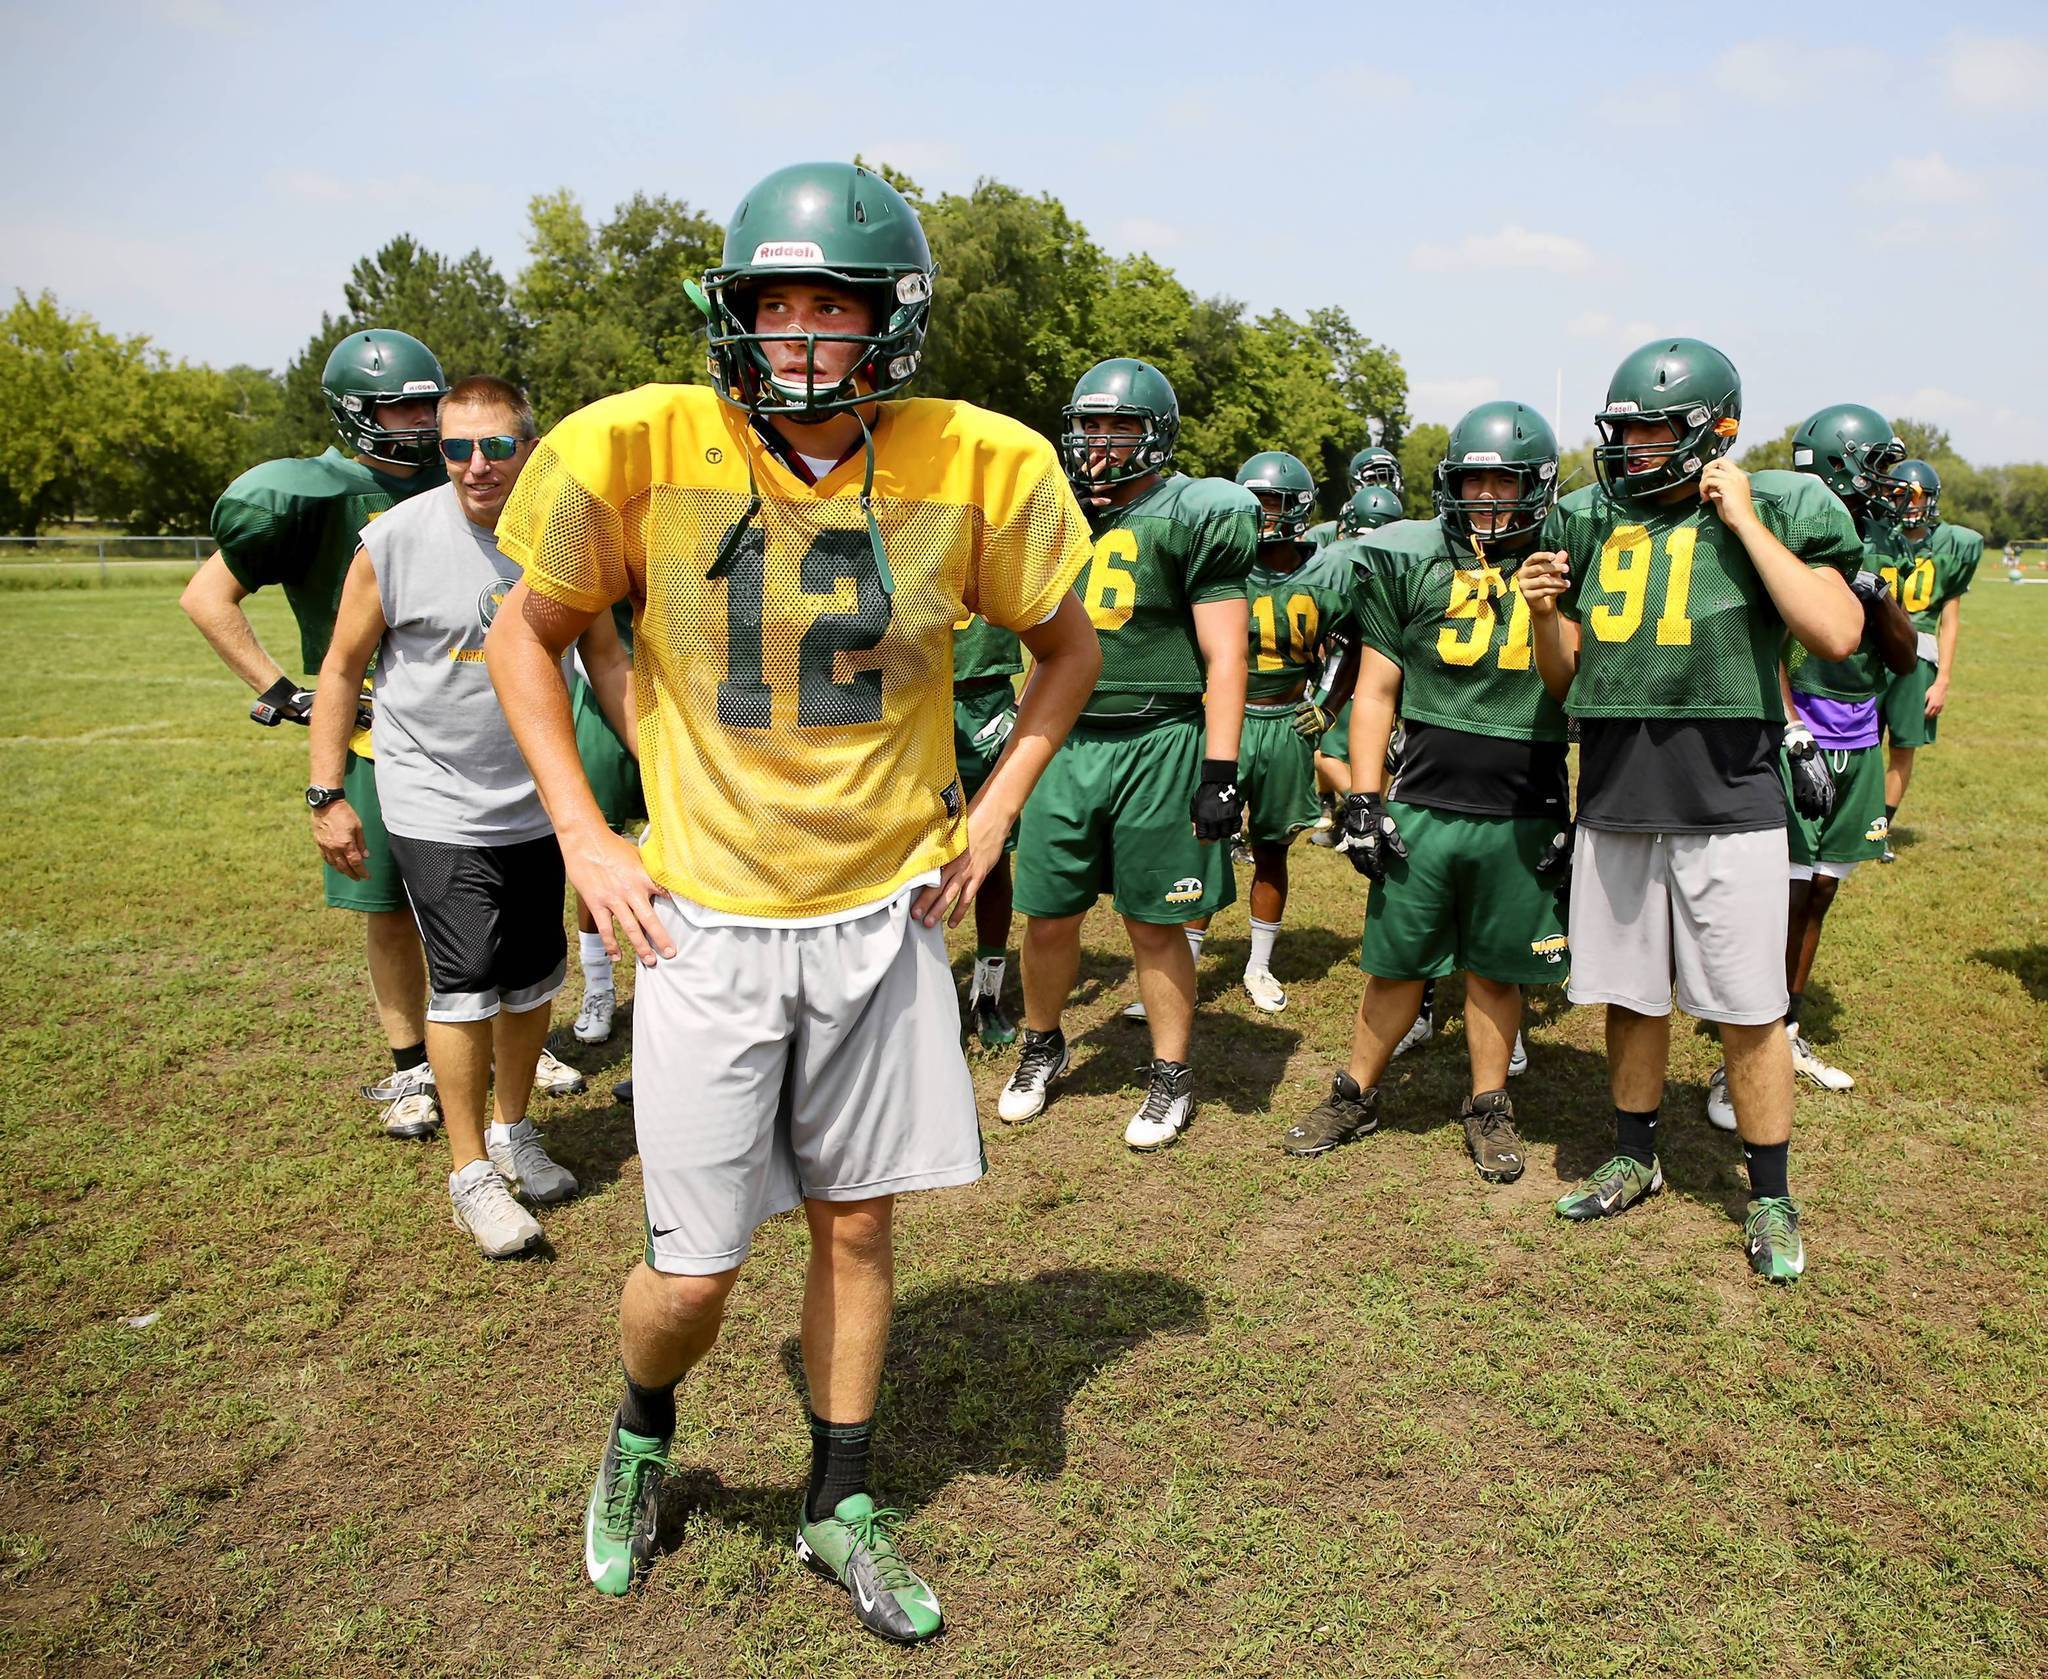 Tony Durns No 18 Waubonsie Valley Relying On Defense To Get Back